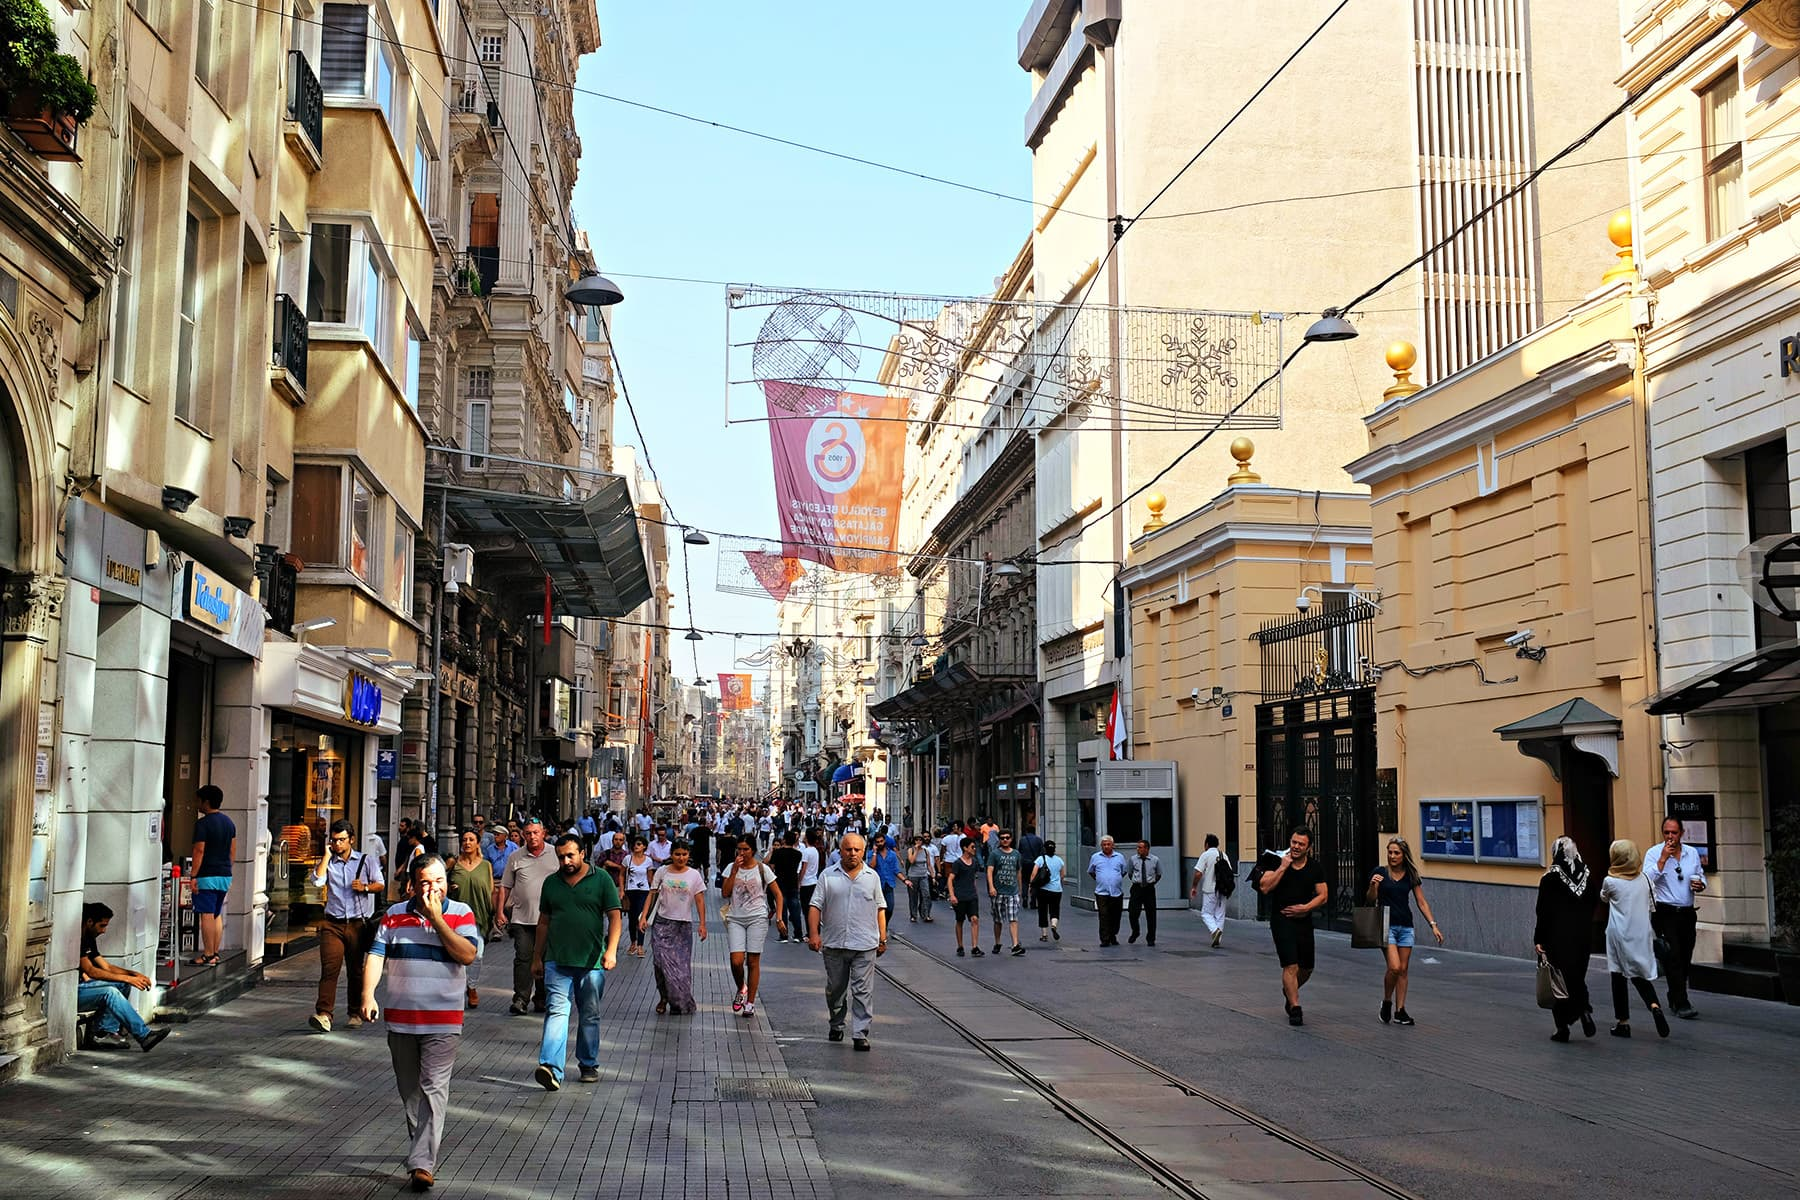 A view of Istiklal Street during the day.